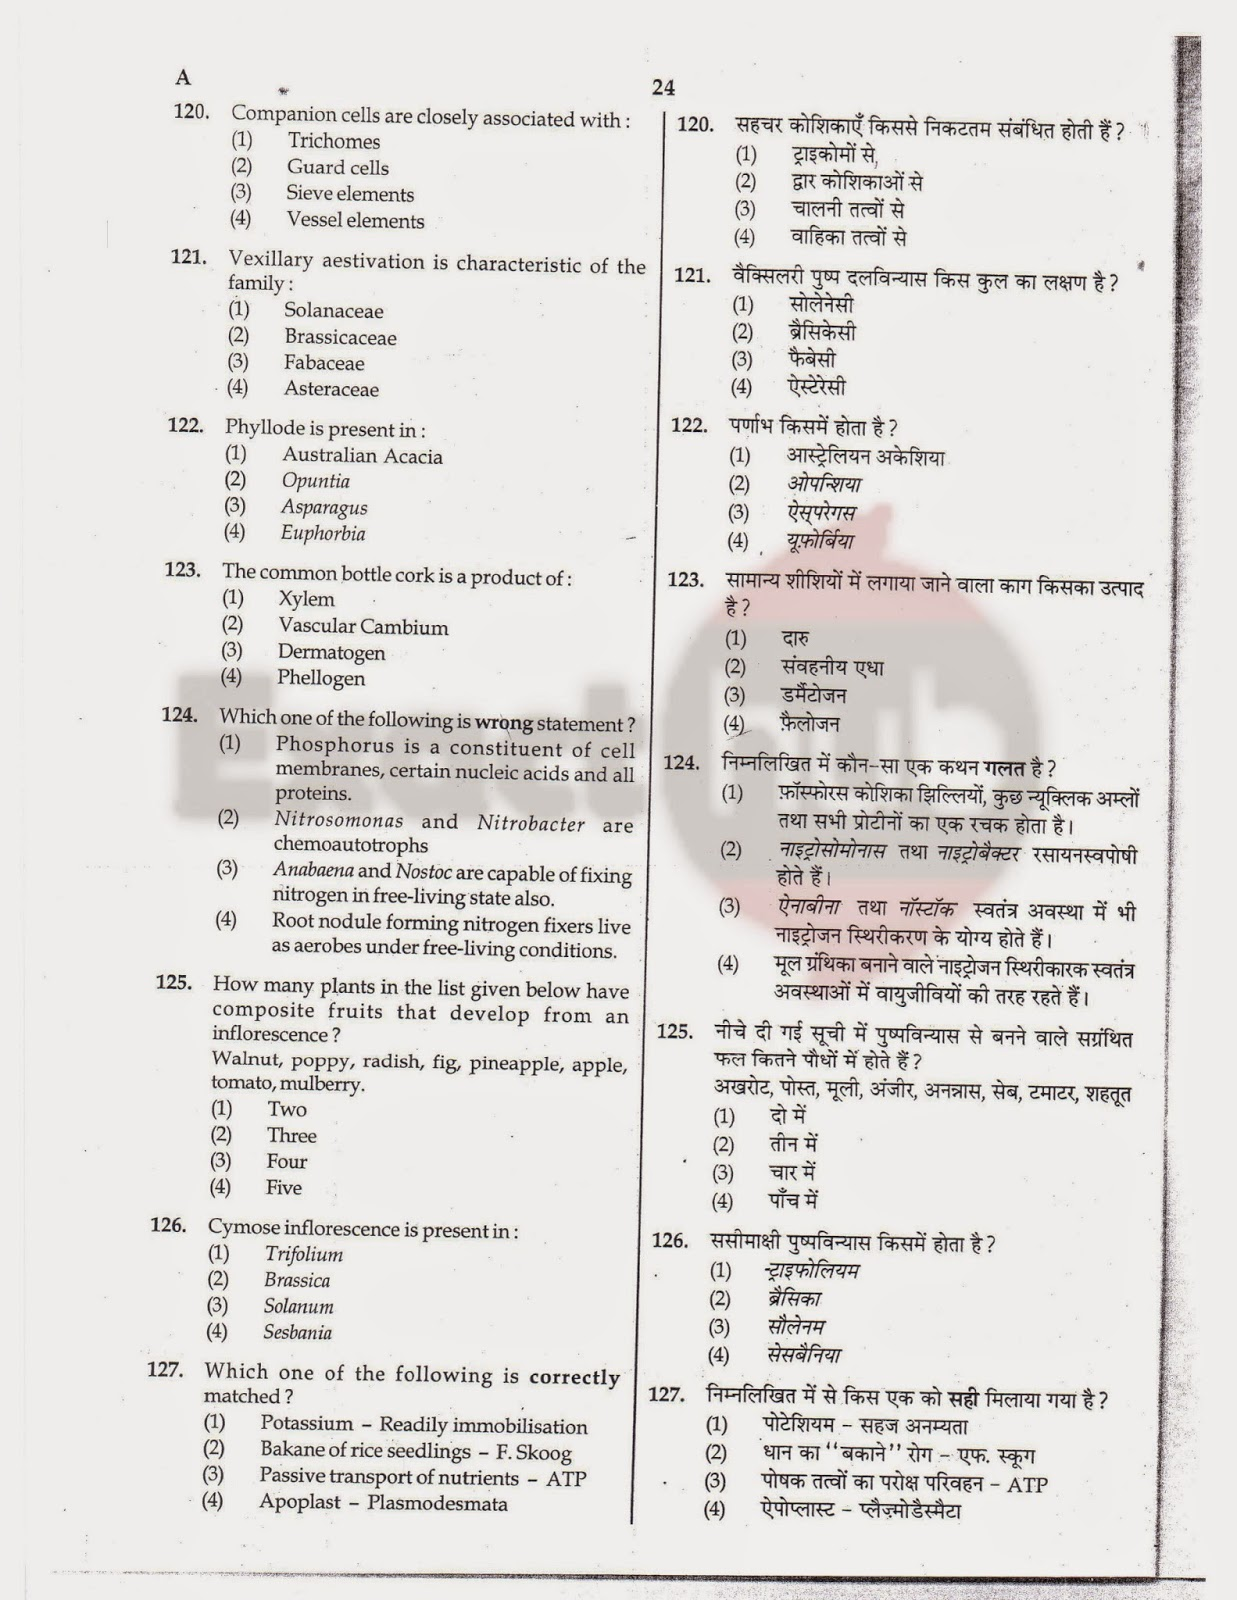 AIPMT 2012 Exam Question Paper Page 24